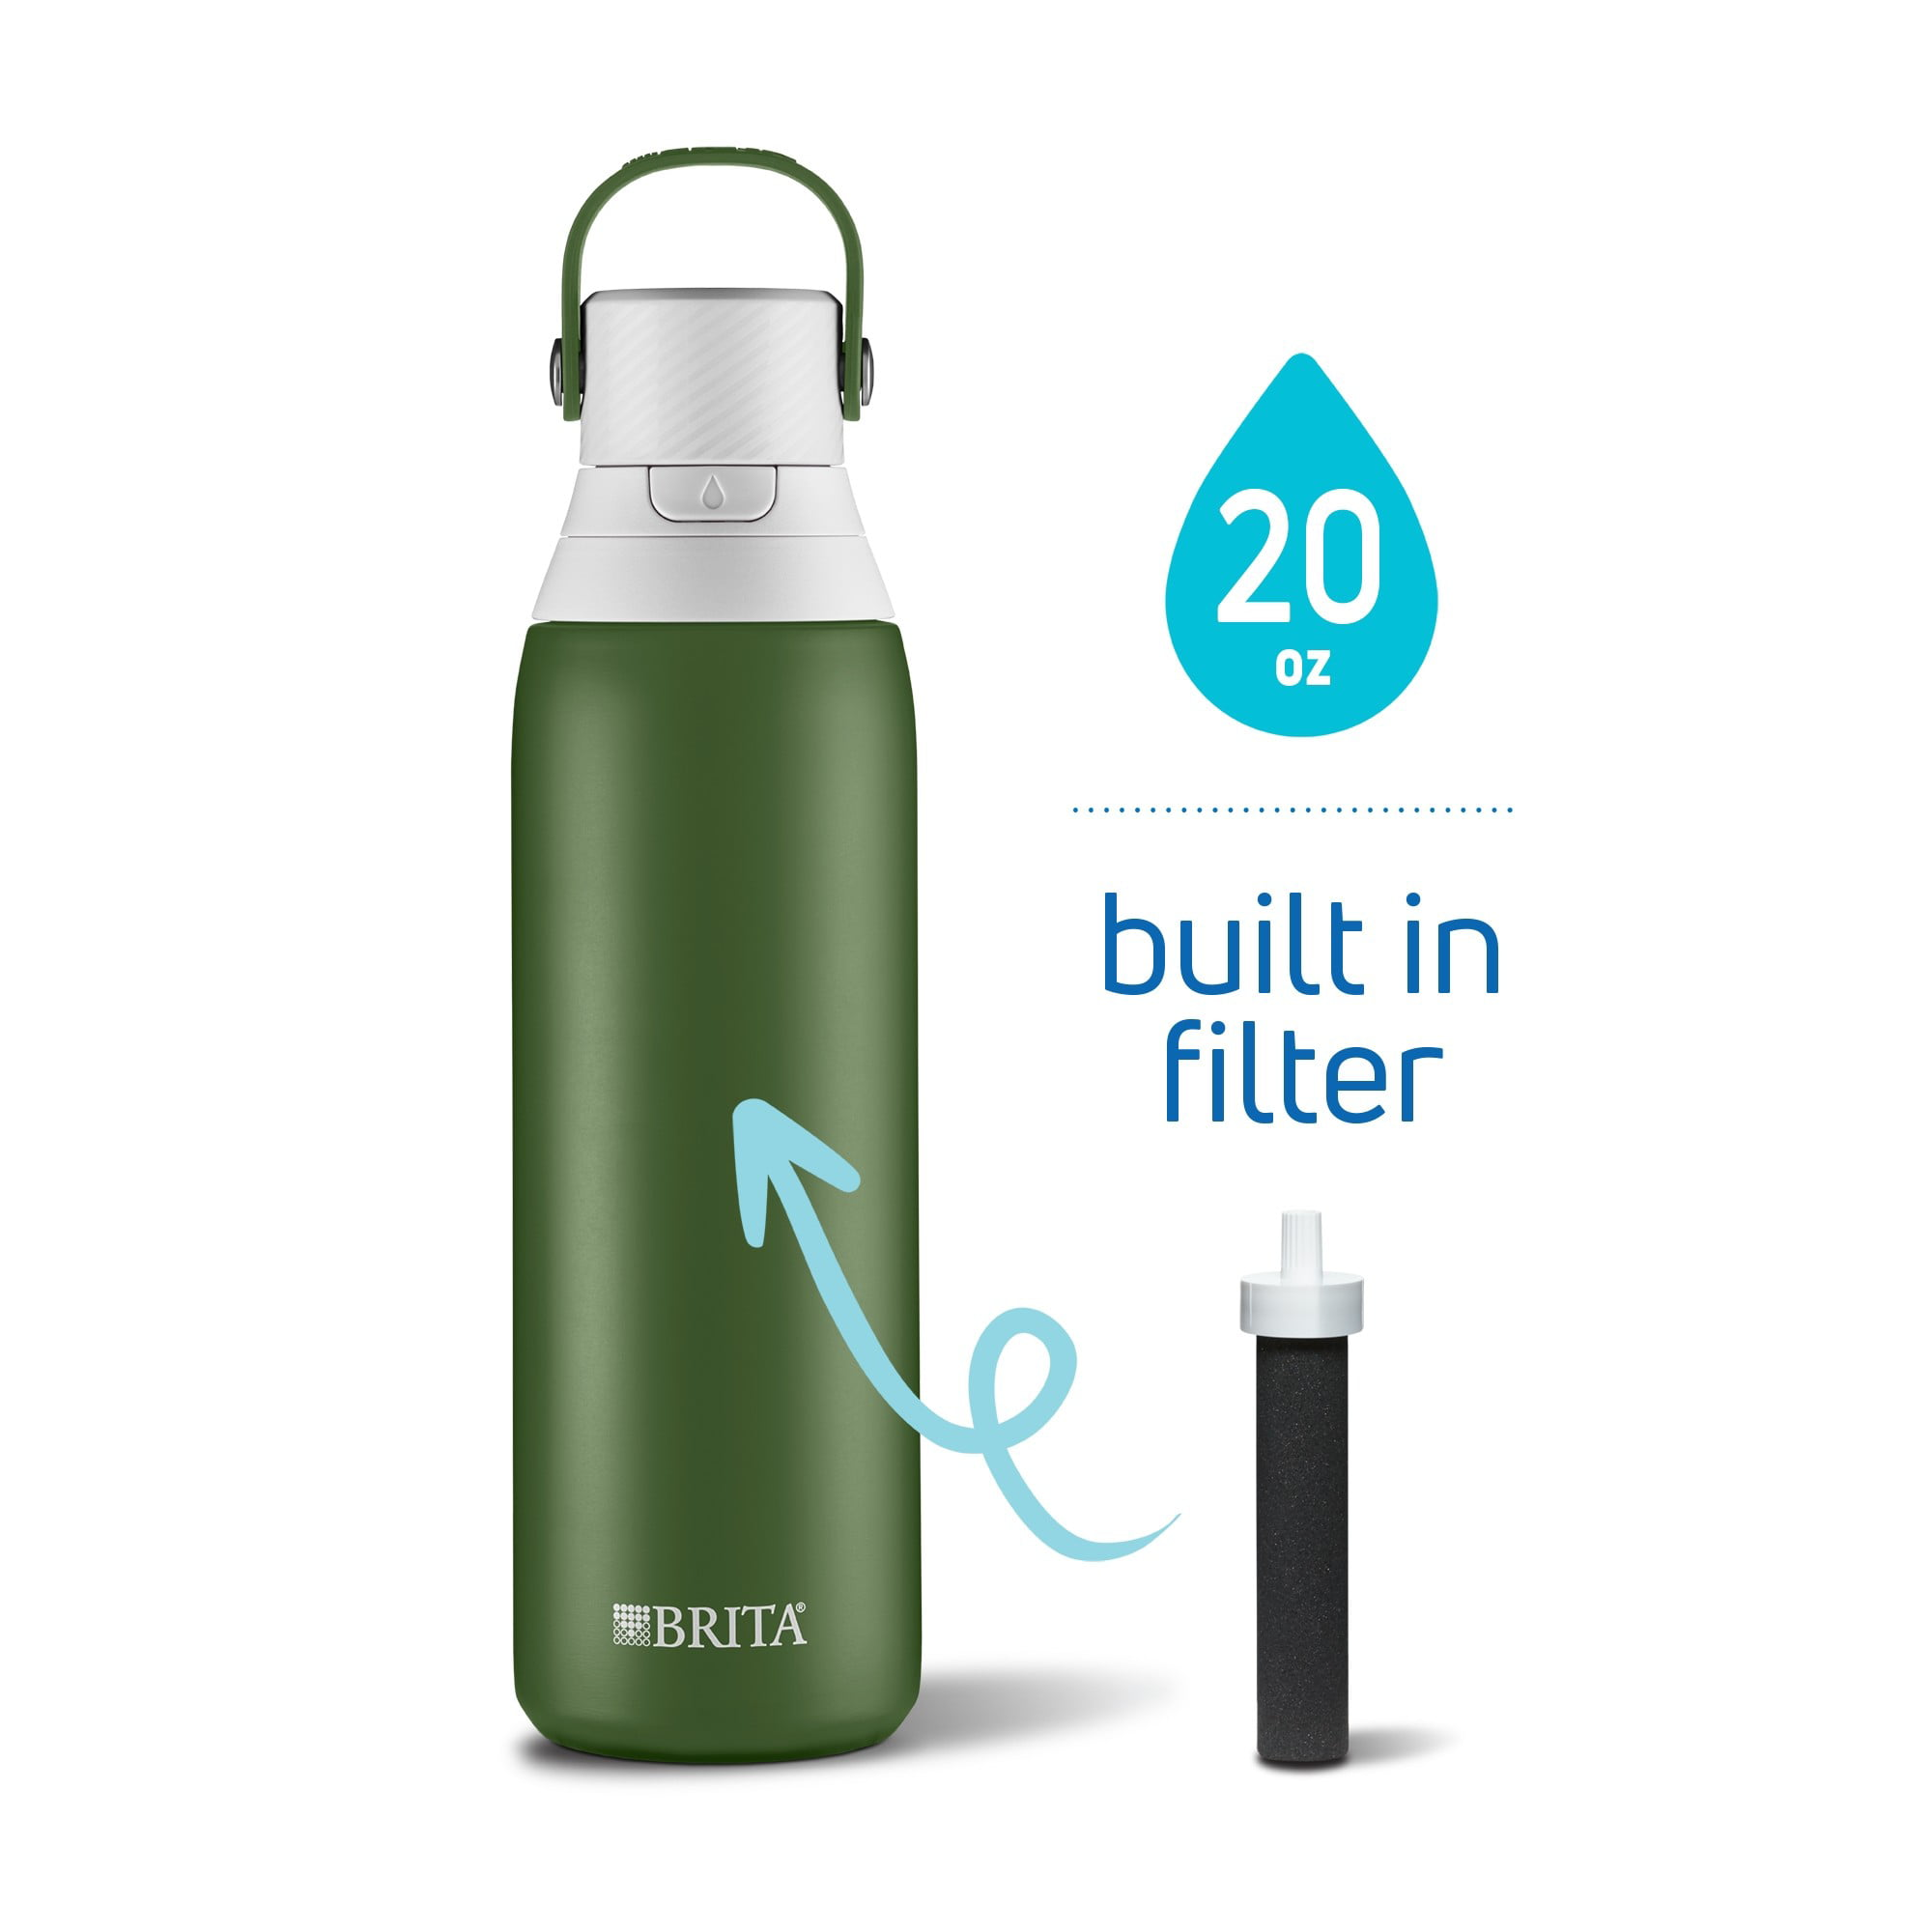 OFFICIAL SONY PLAYSTATON BUTTON ALUMINUM WATER DRINKS BOTTLE WITH BUILT IN STRAW